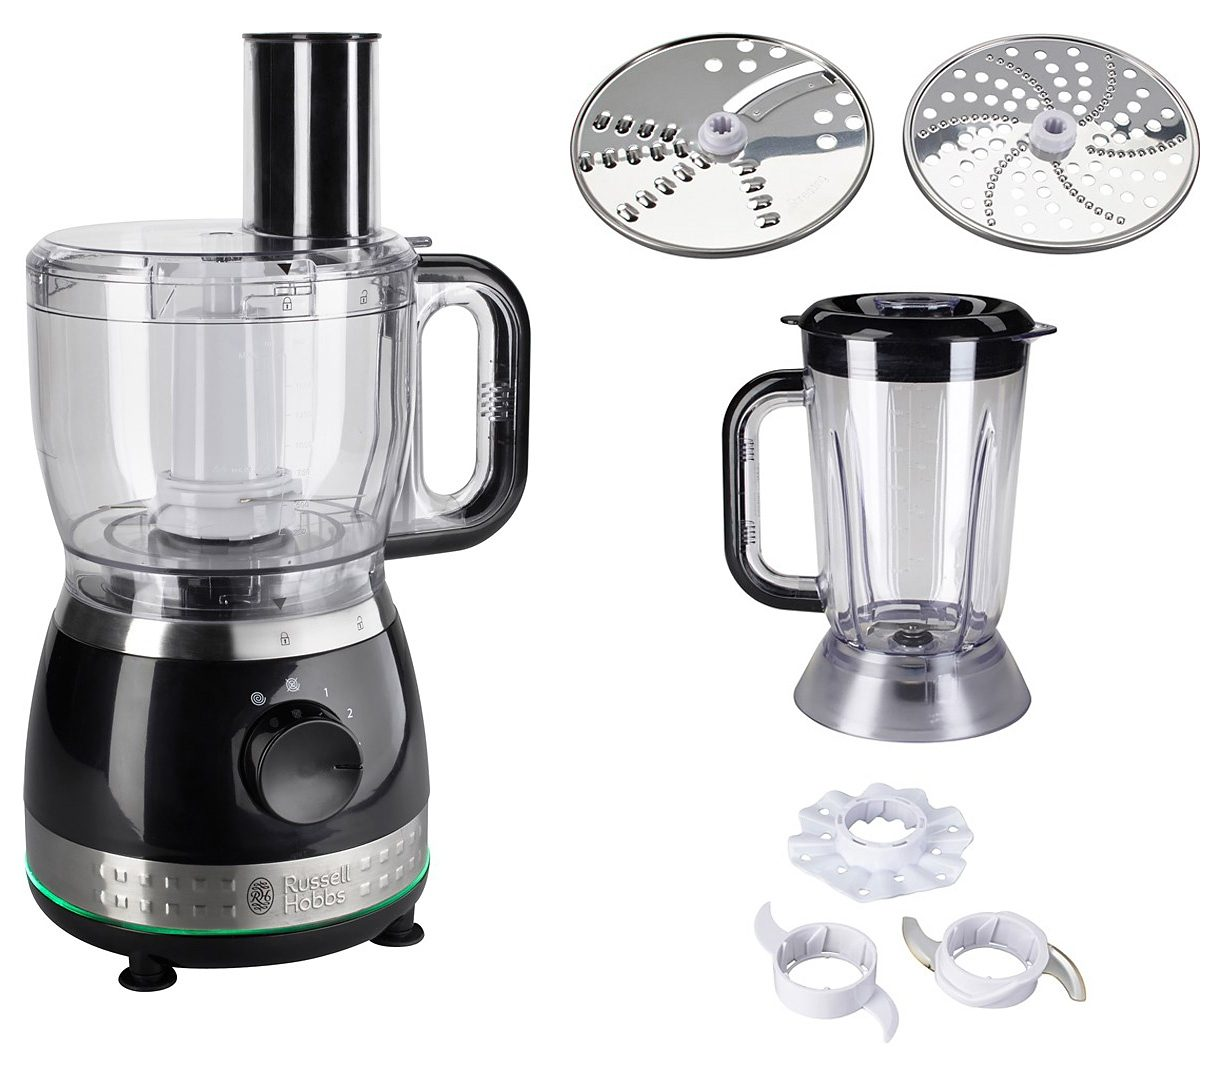 Russell Hobbs Food Processor »Illumina« 20240-56, 1,7 l, 850 W